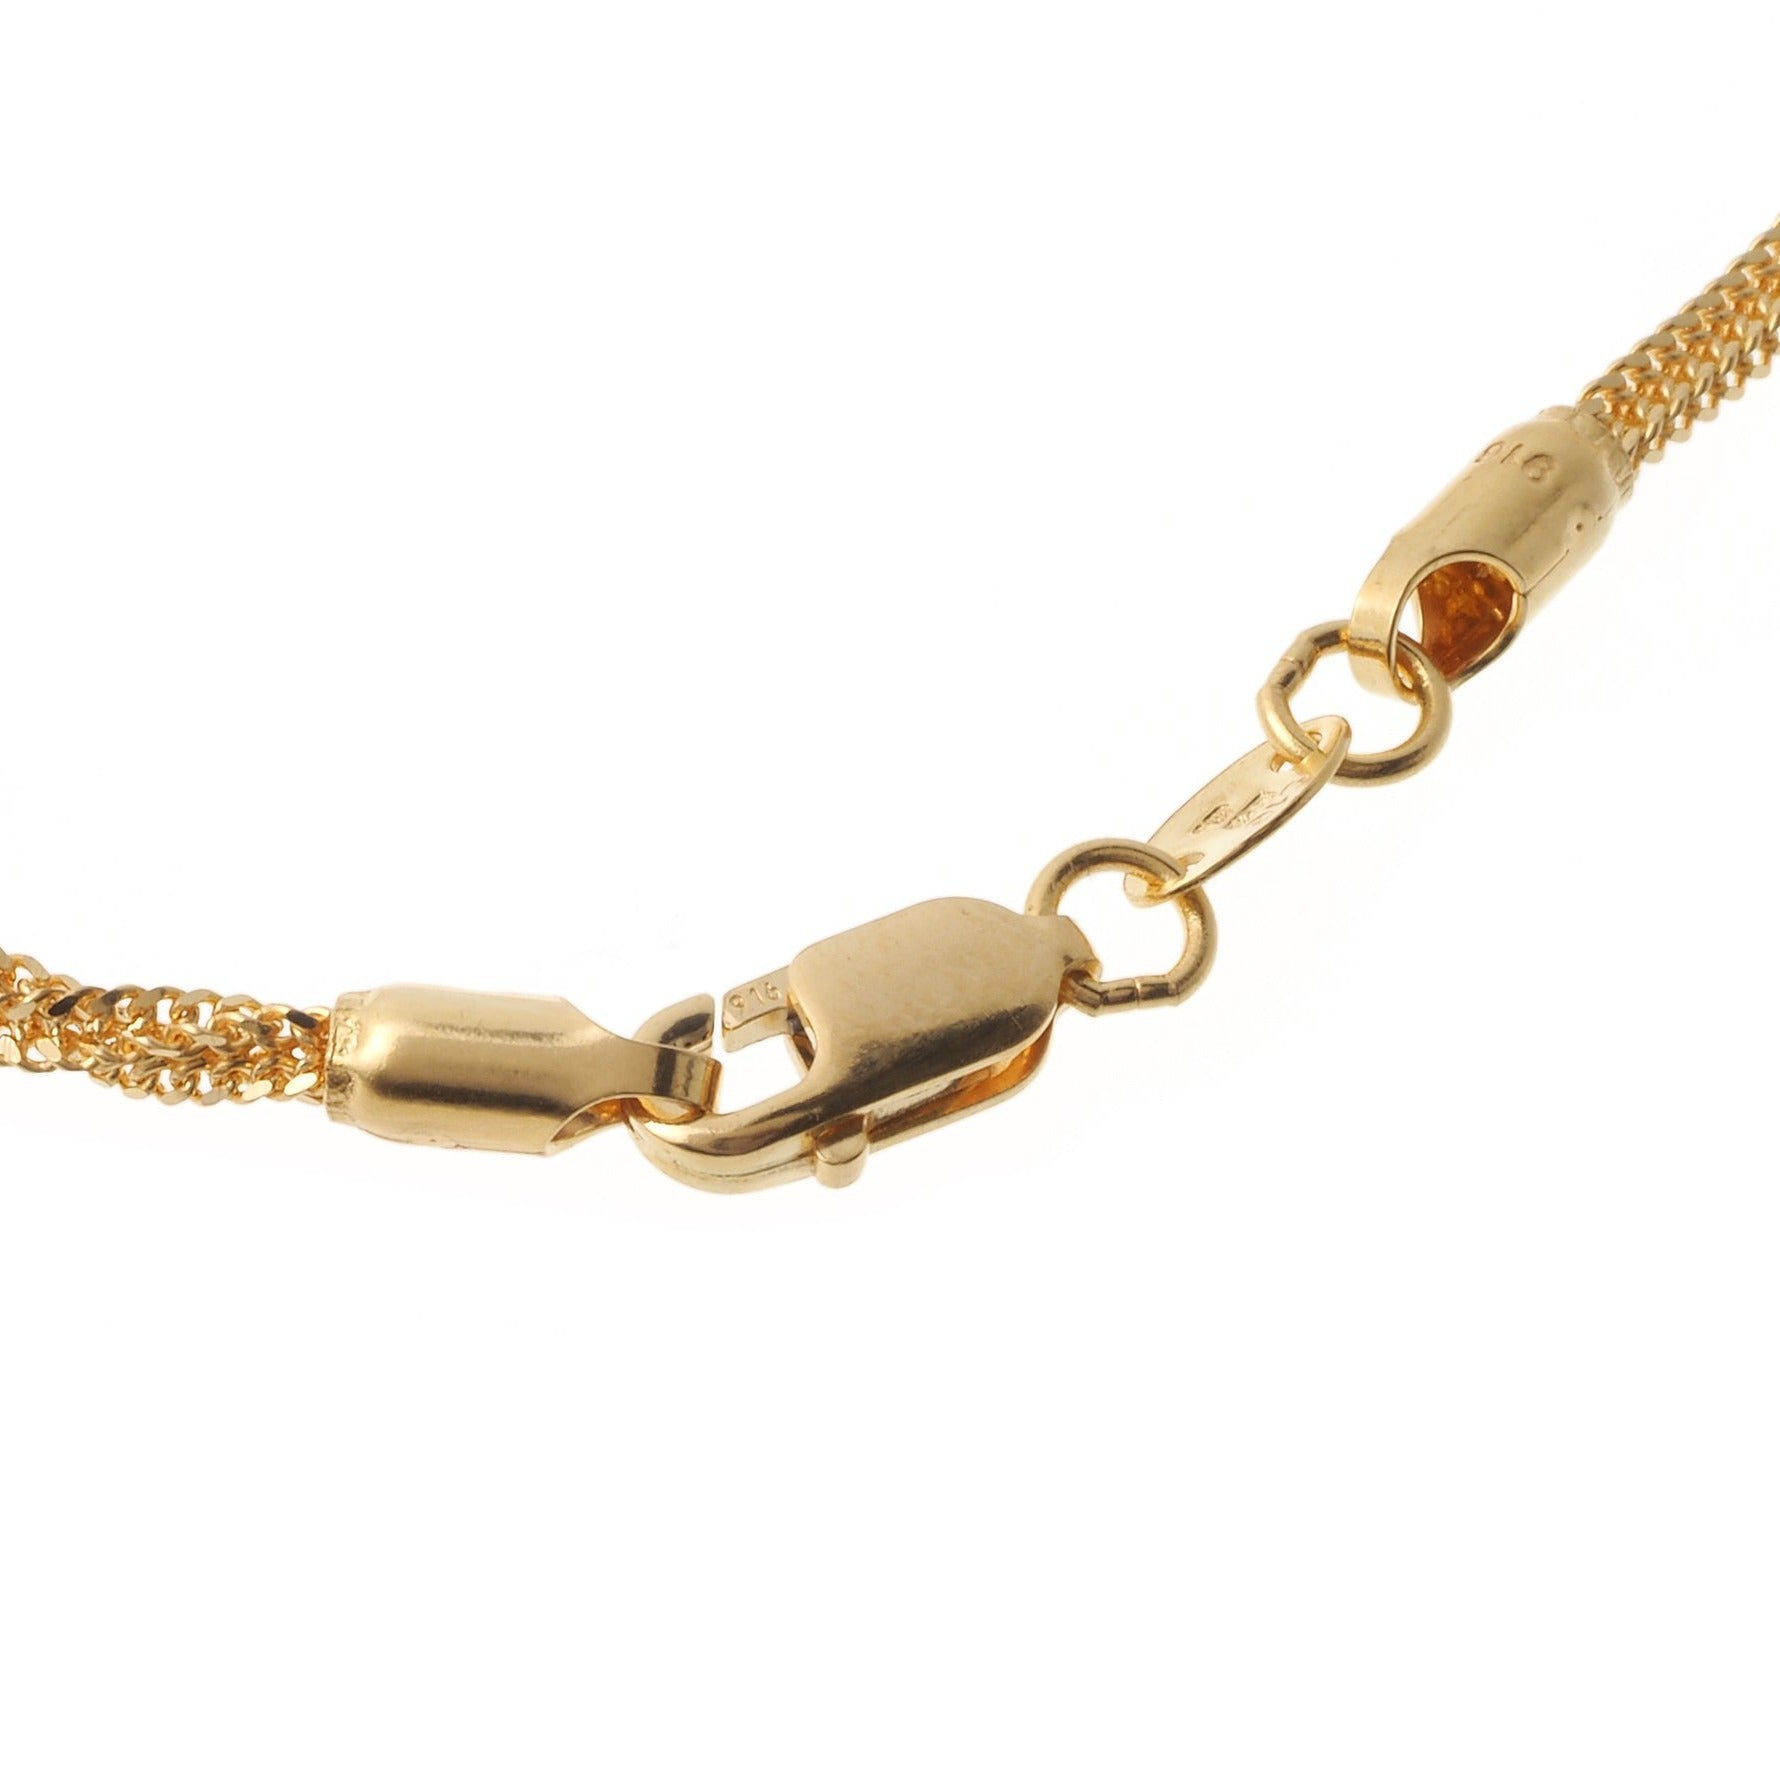 22ct Gold Chain with Twisted Design C-6222